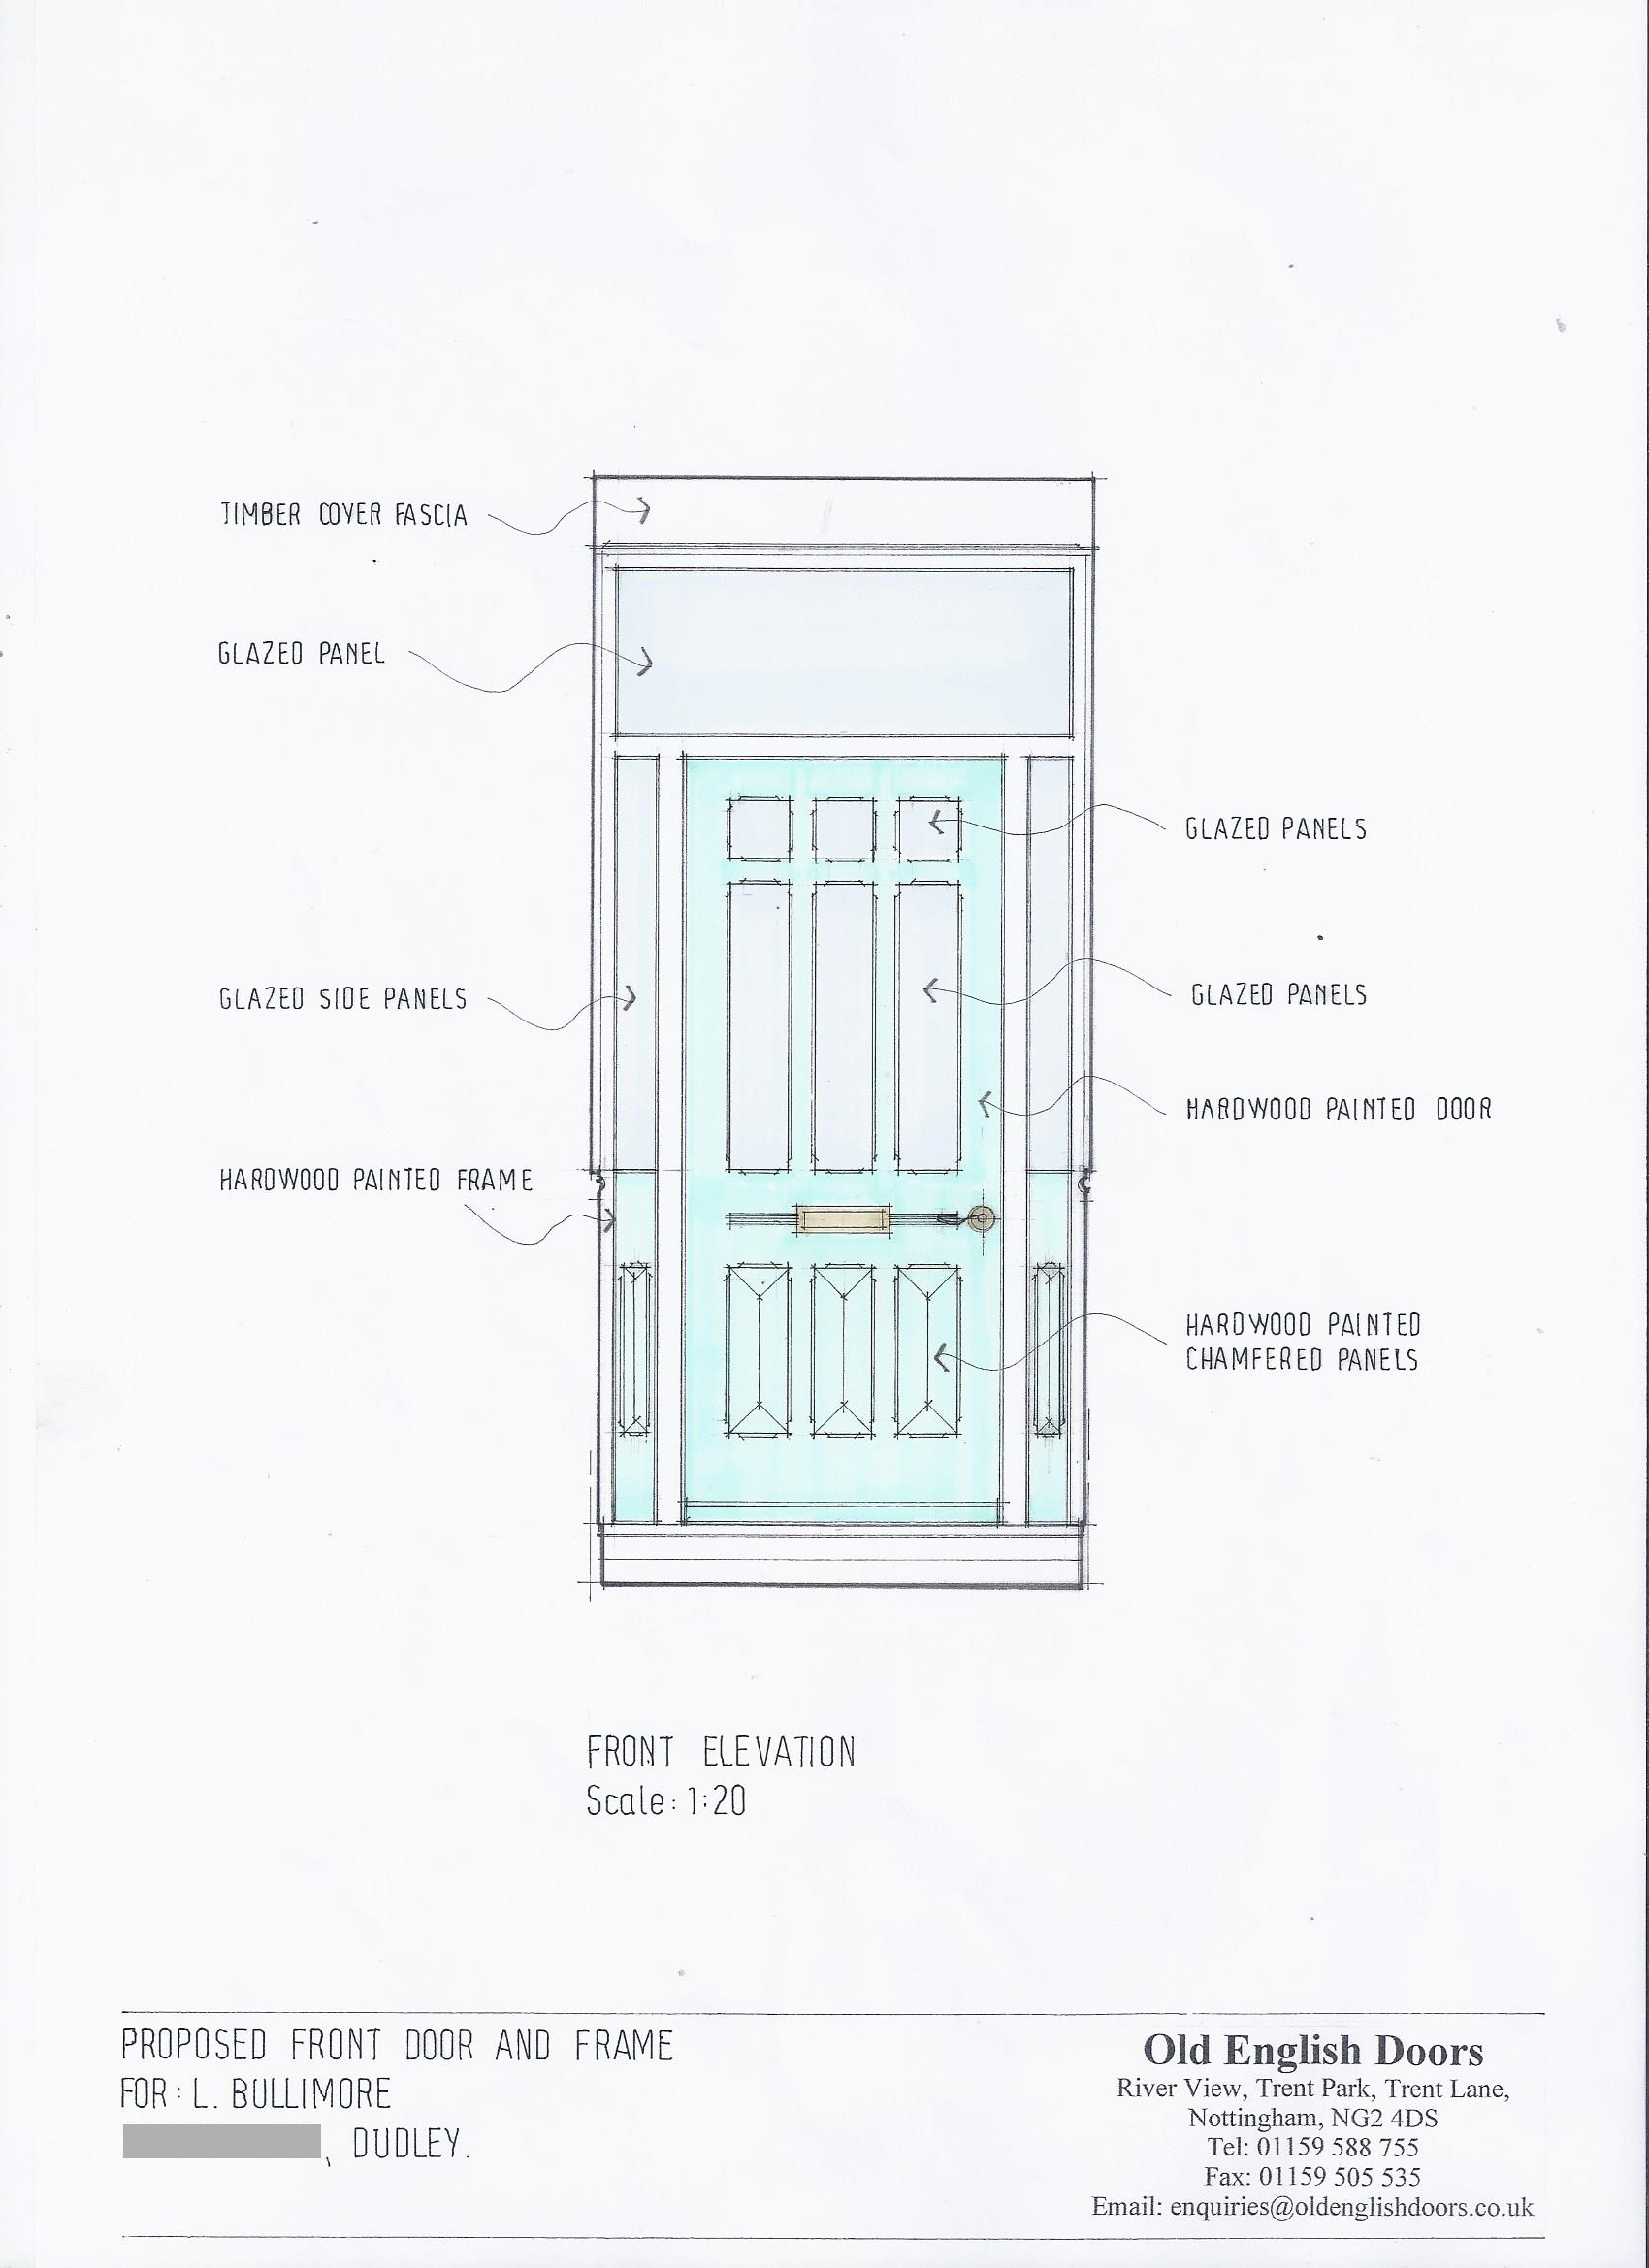 Front Door Drawing For How Our Bespoke Door Design Service Works u2022 Old English Doors